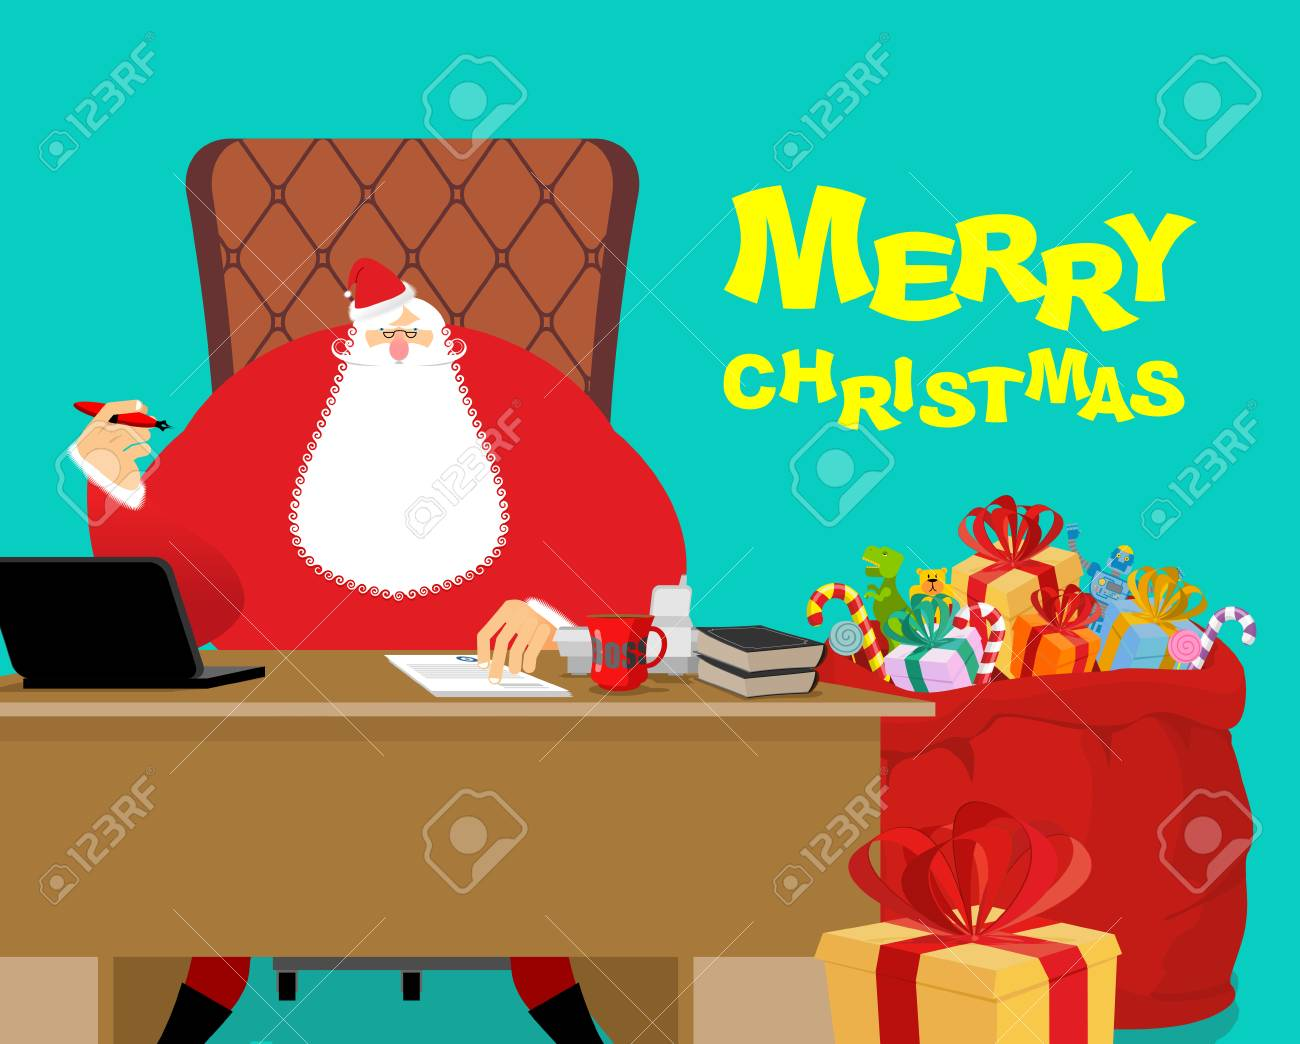 Merry Christmas Boss.Merry Christmas Santa Claus At Work Big Red Bag With Gifts